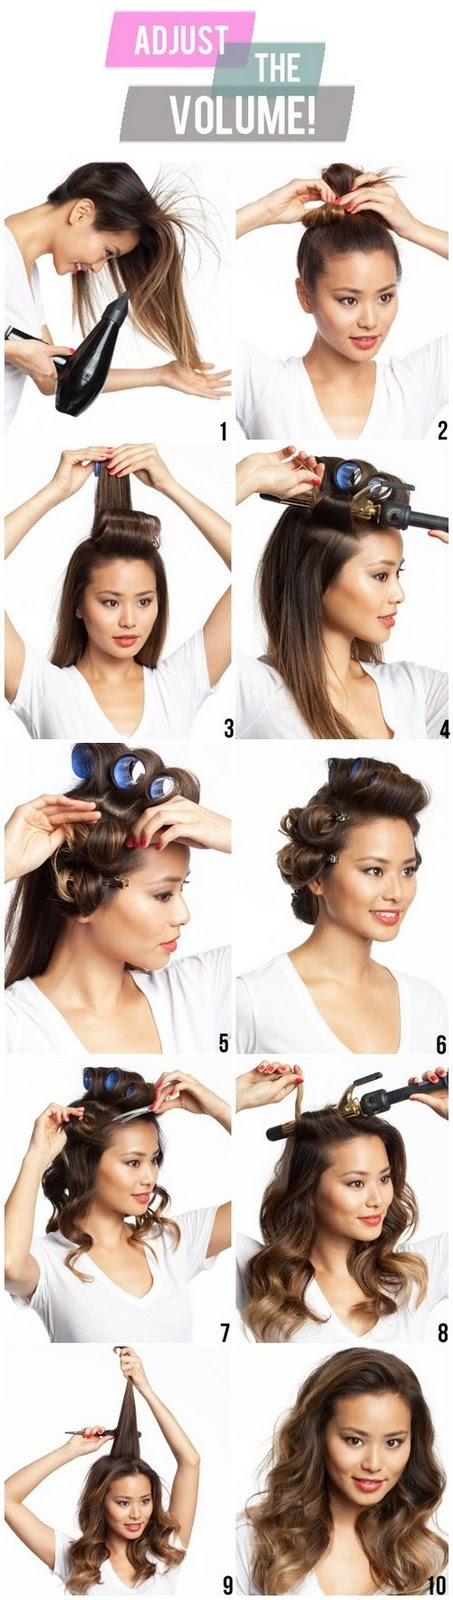 How-to-do-hair-style-hair-twist-updos-braids-pony-flowers+%25252810%252529_large